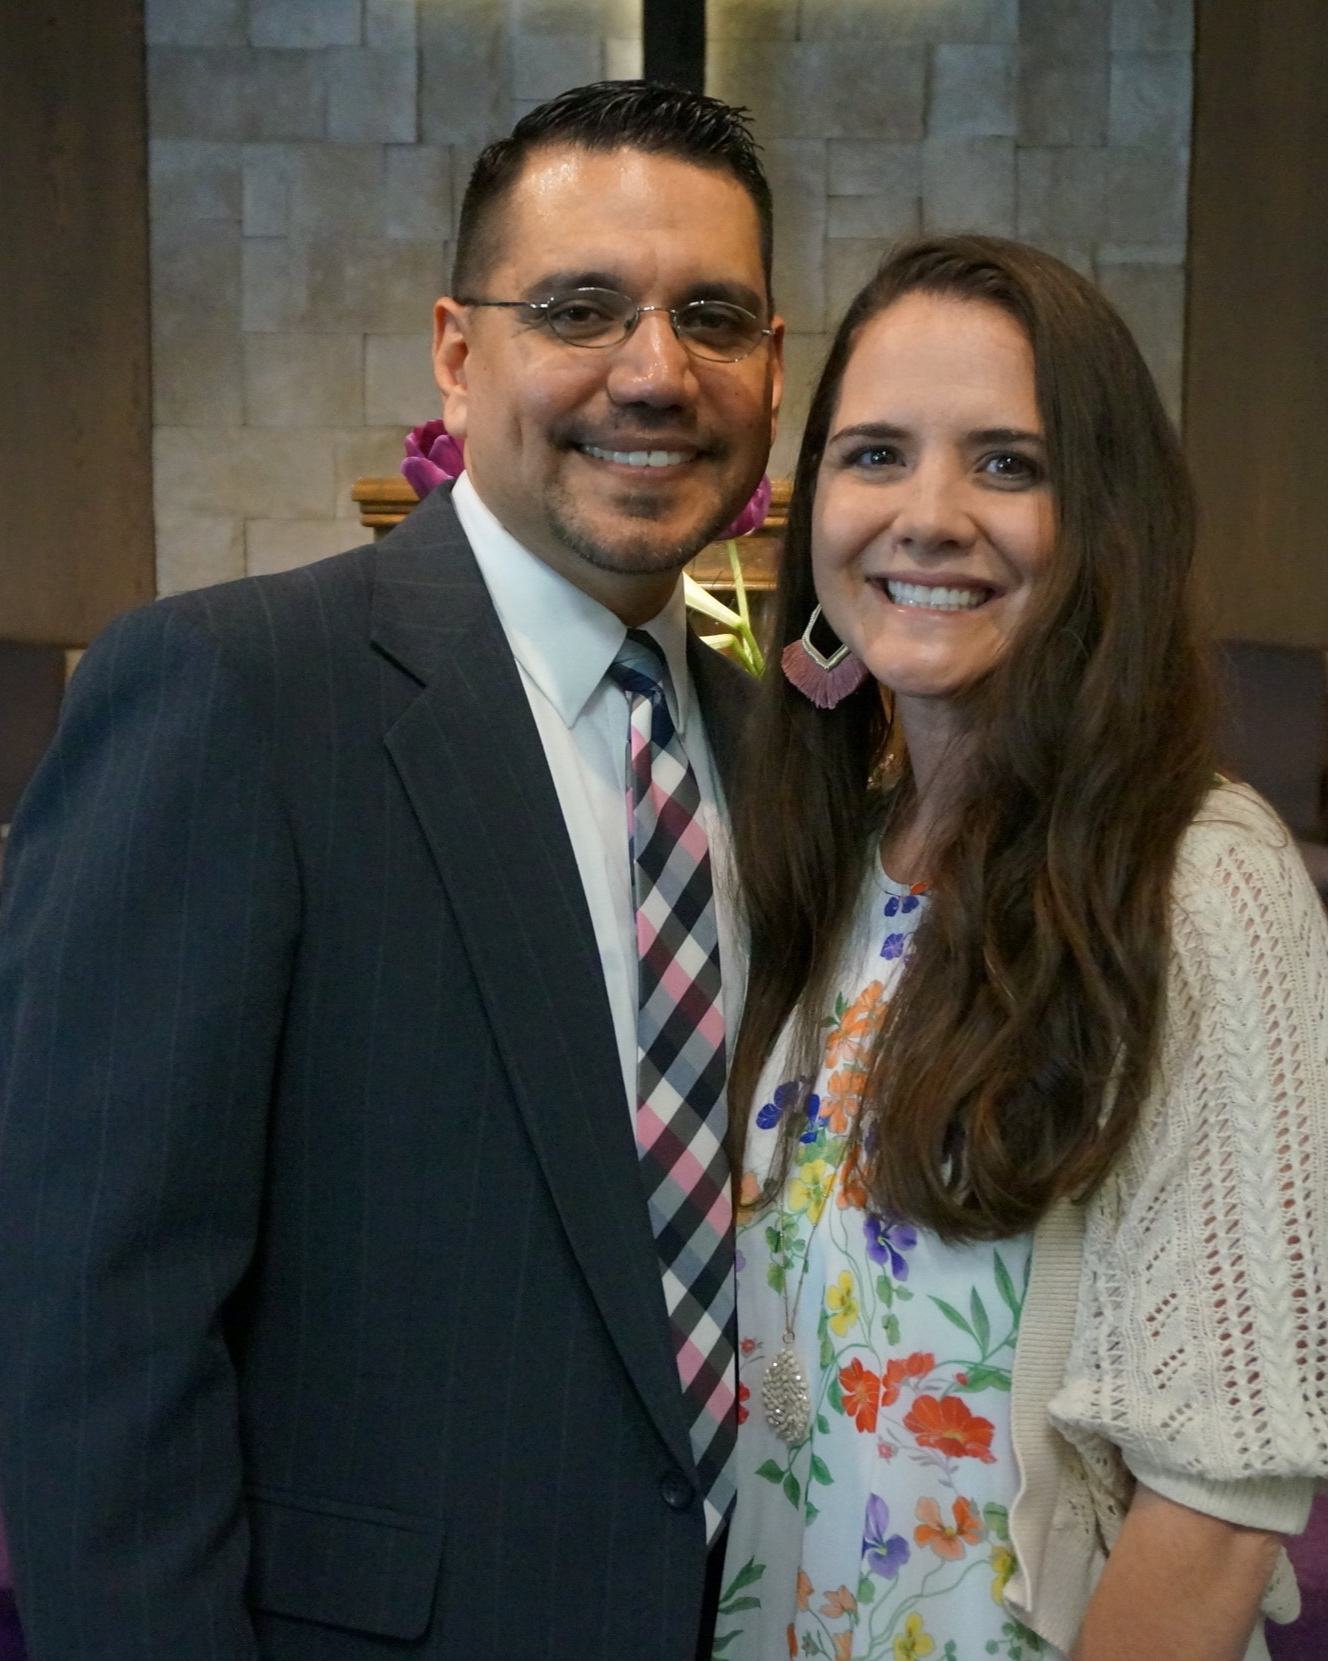 Rev. Nathan Aviles - Pastor of the North Texas Church